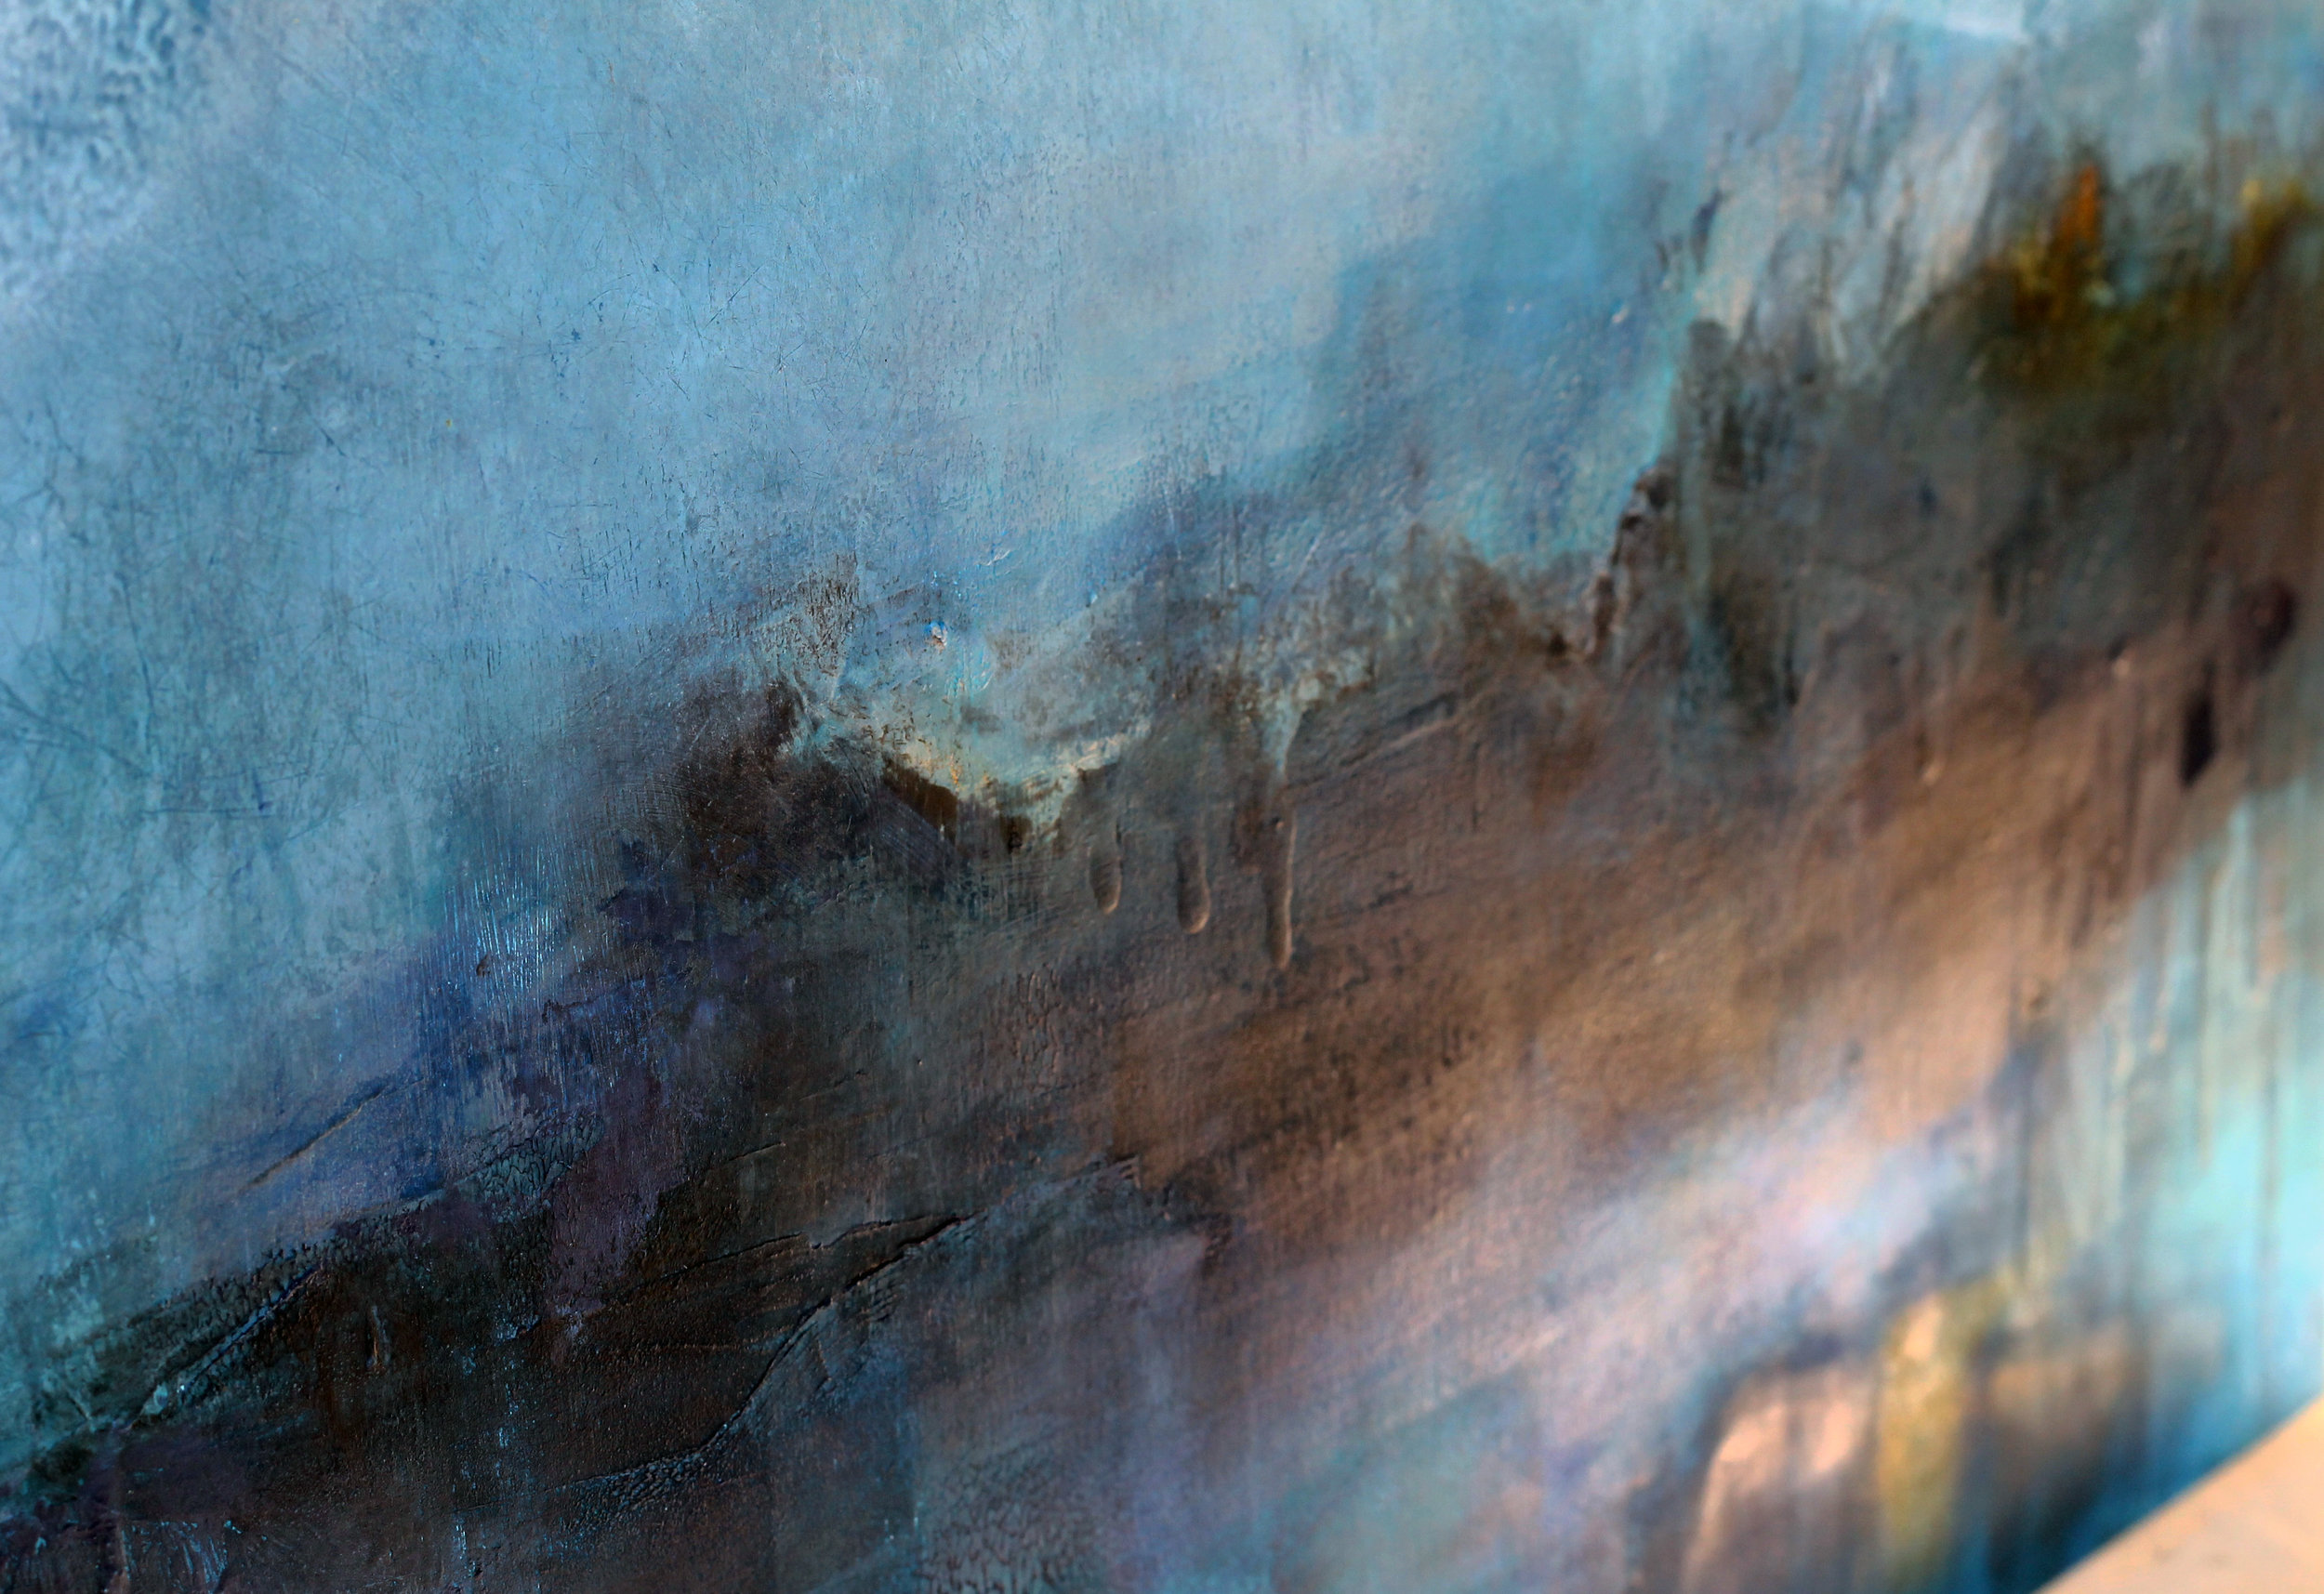 Texture and colour - Blue Sky painting